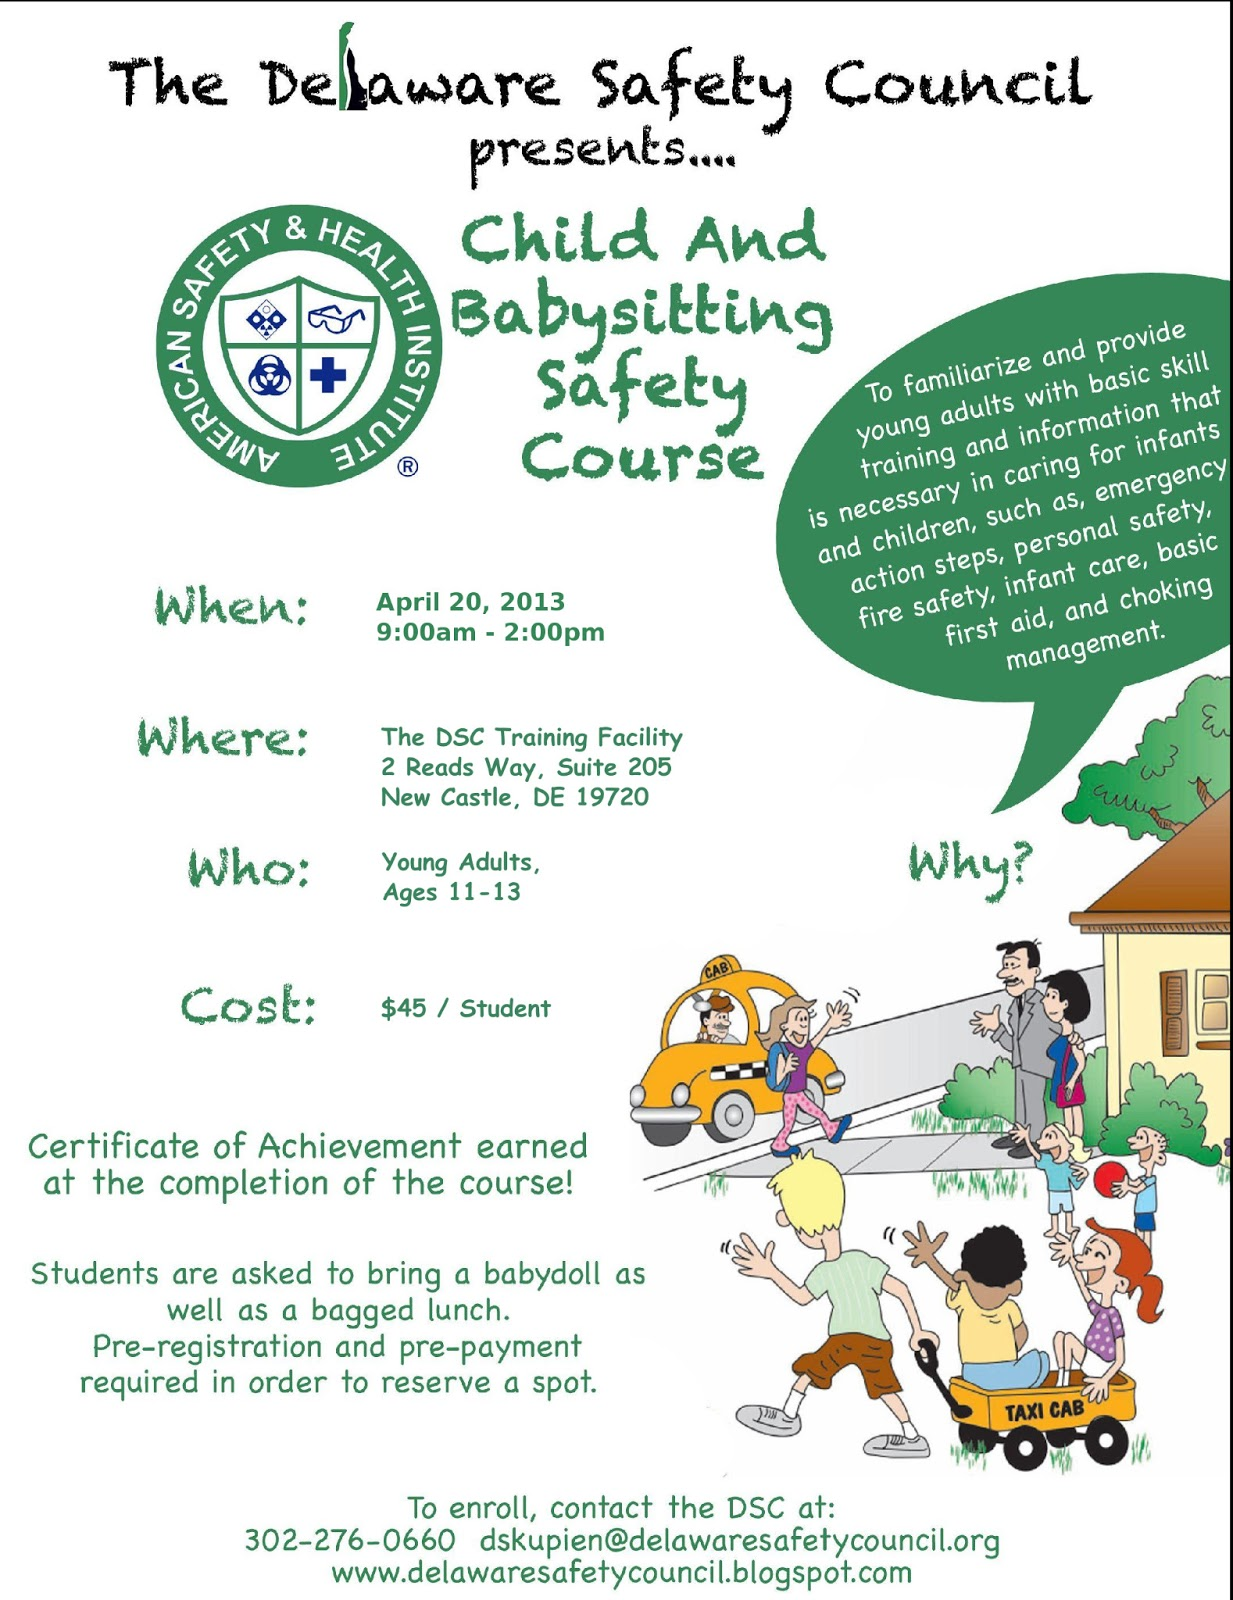 Child And Babysitting Safety Course Scheduled For April 20 2013